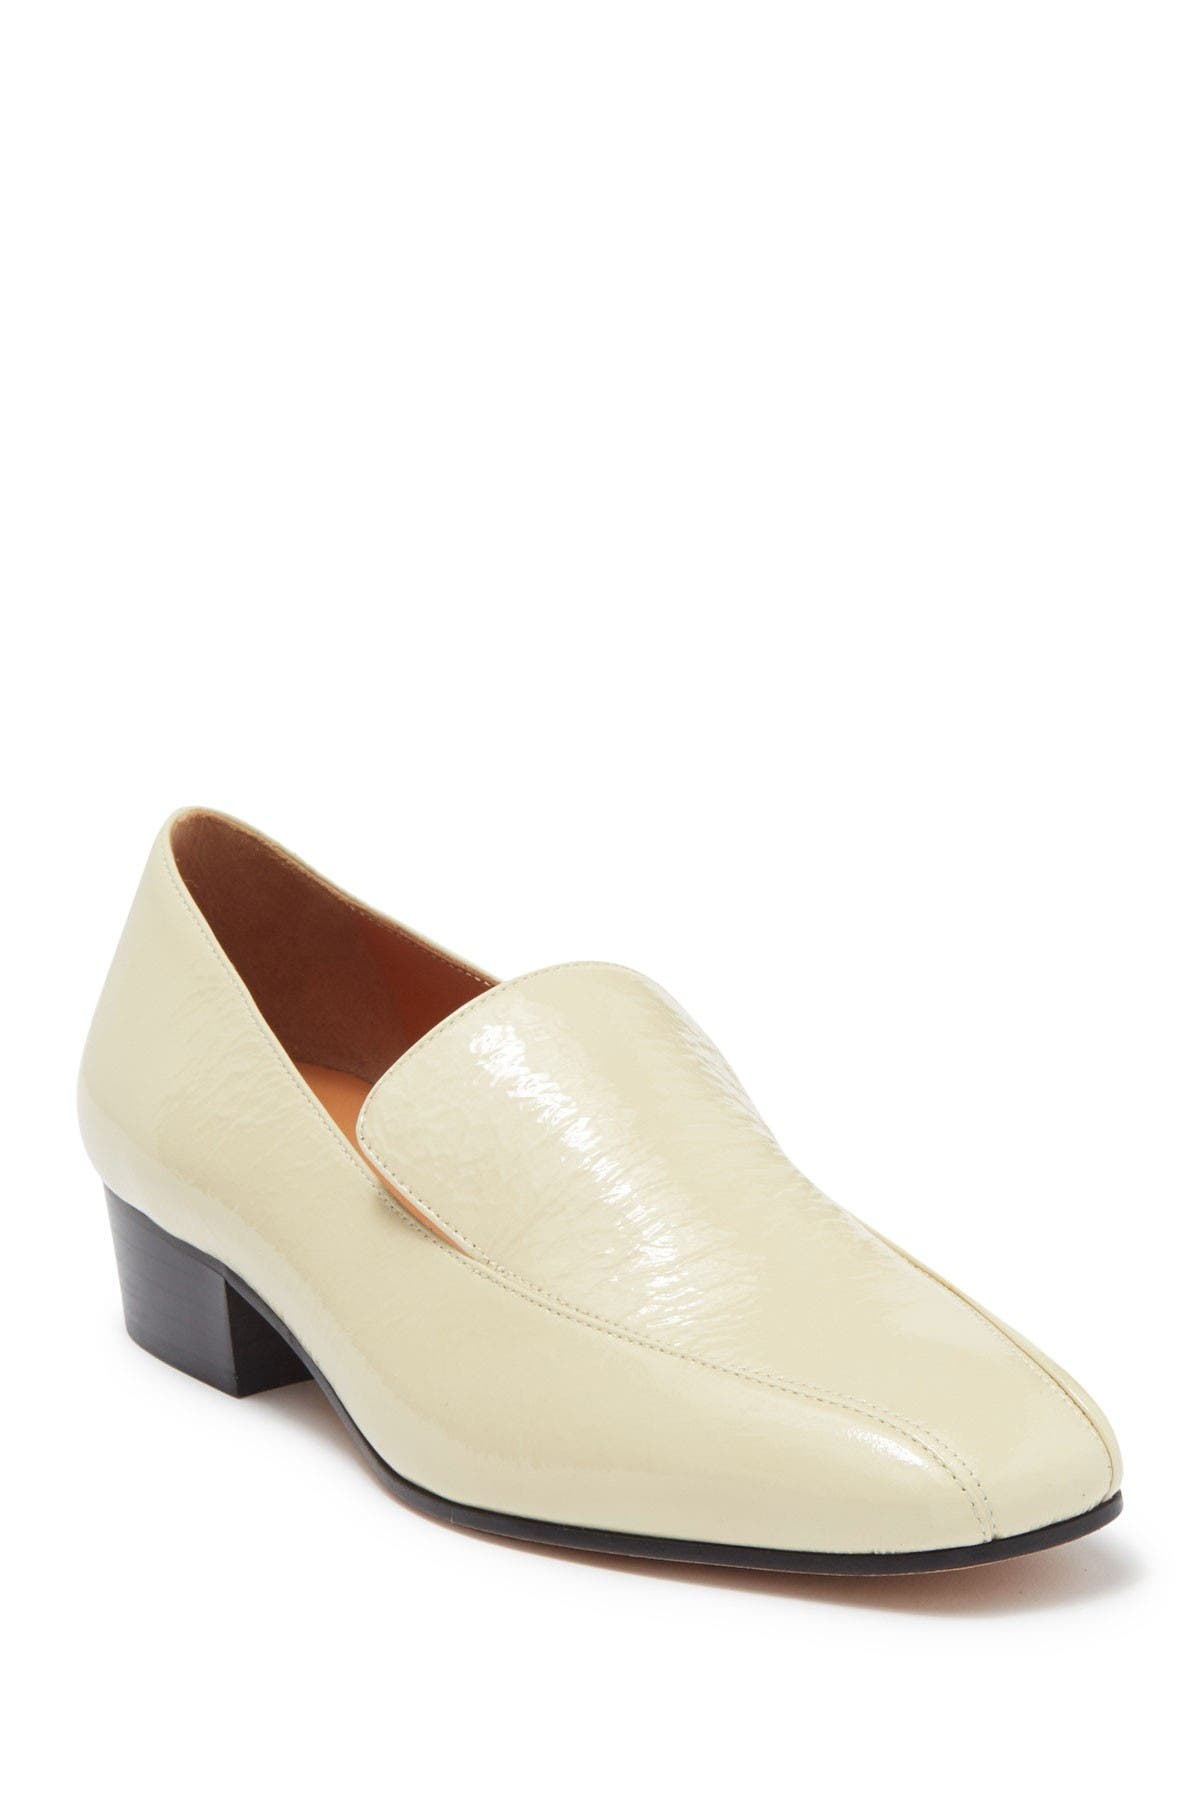 Image of RACHEL COMEY Cheater Leather Block Heel Loafer